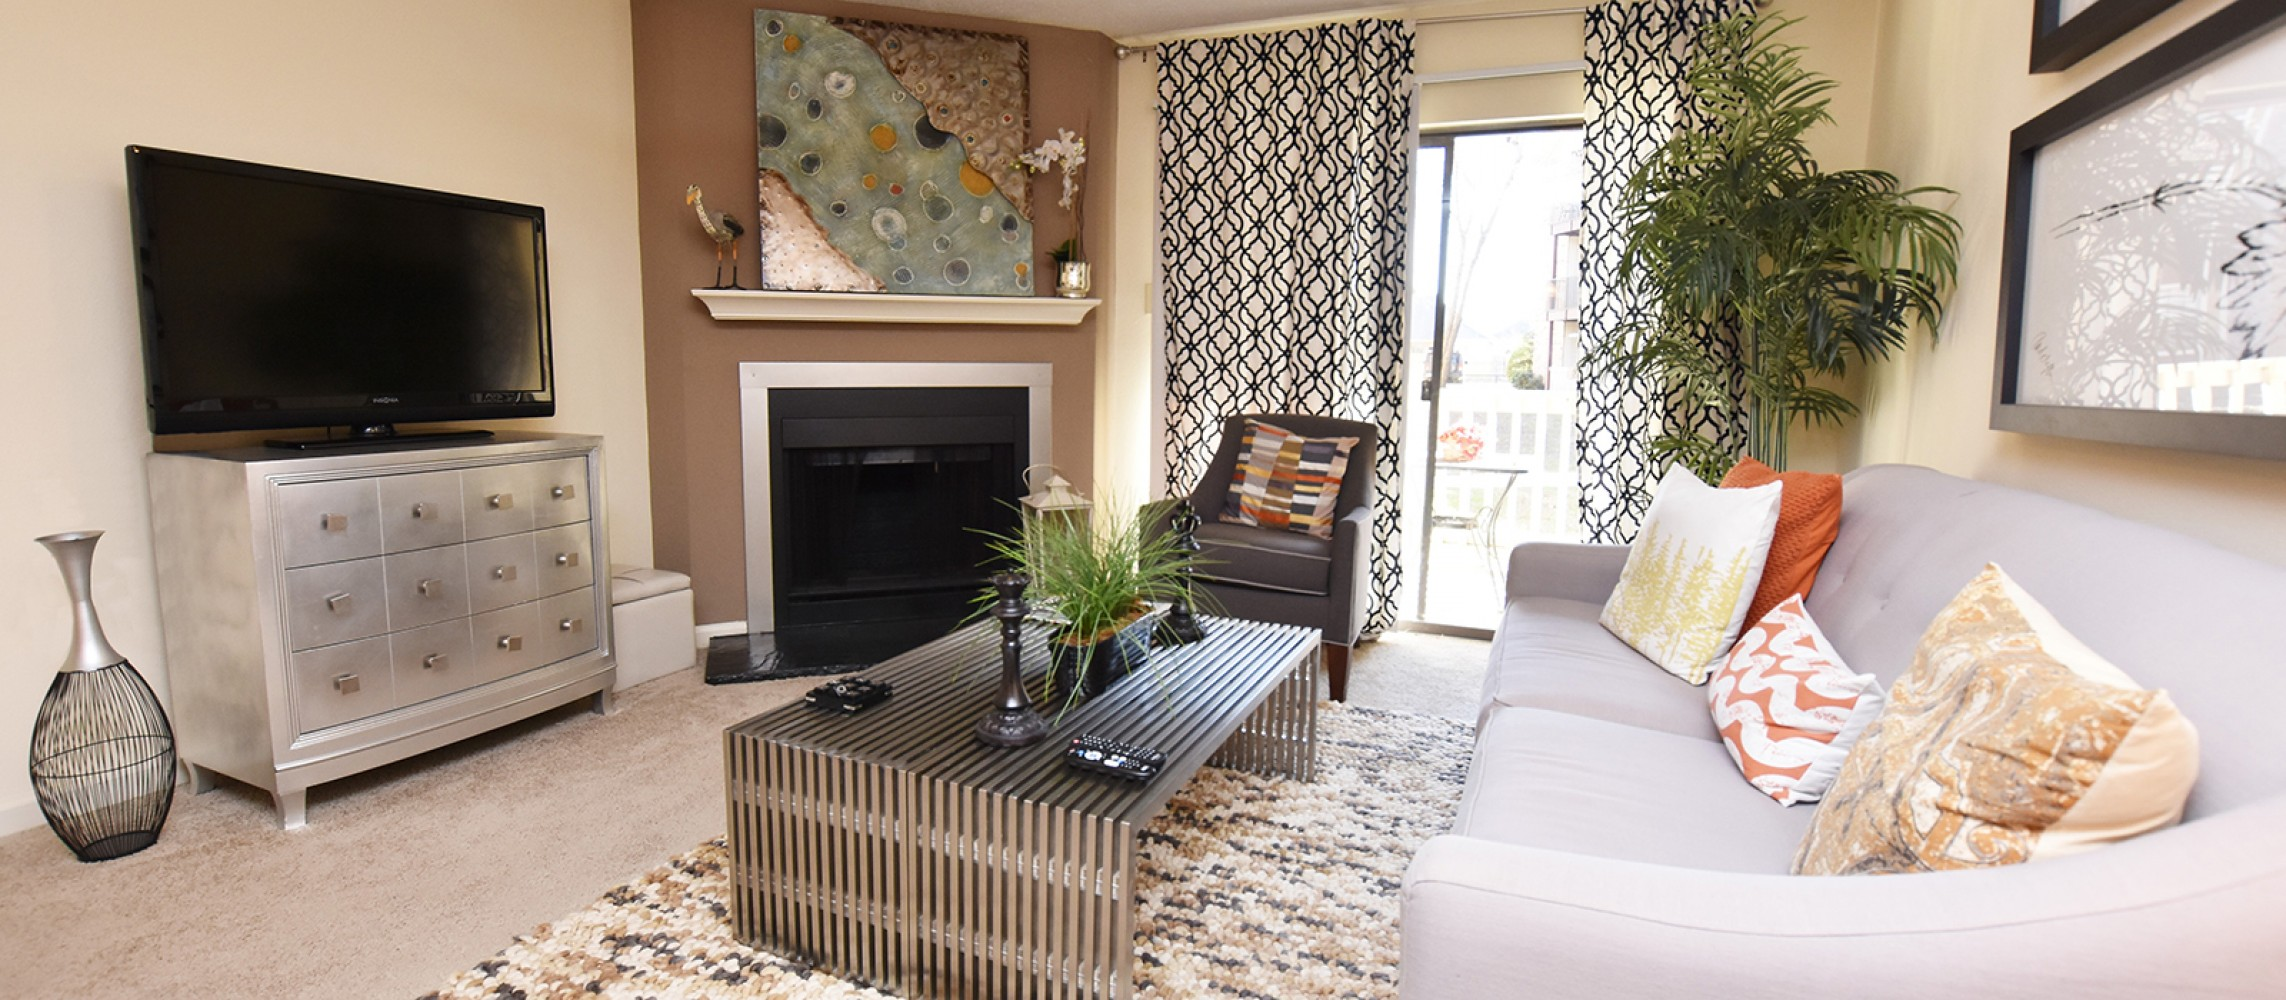 of rouge regent new the in bedroom la beautiful apartments baton apartment ordinary homes